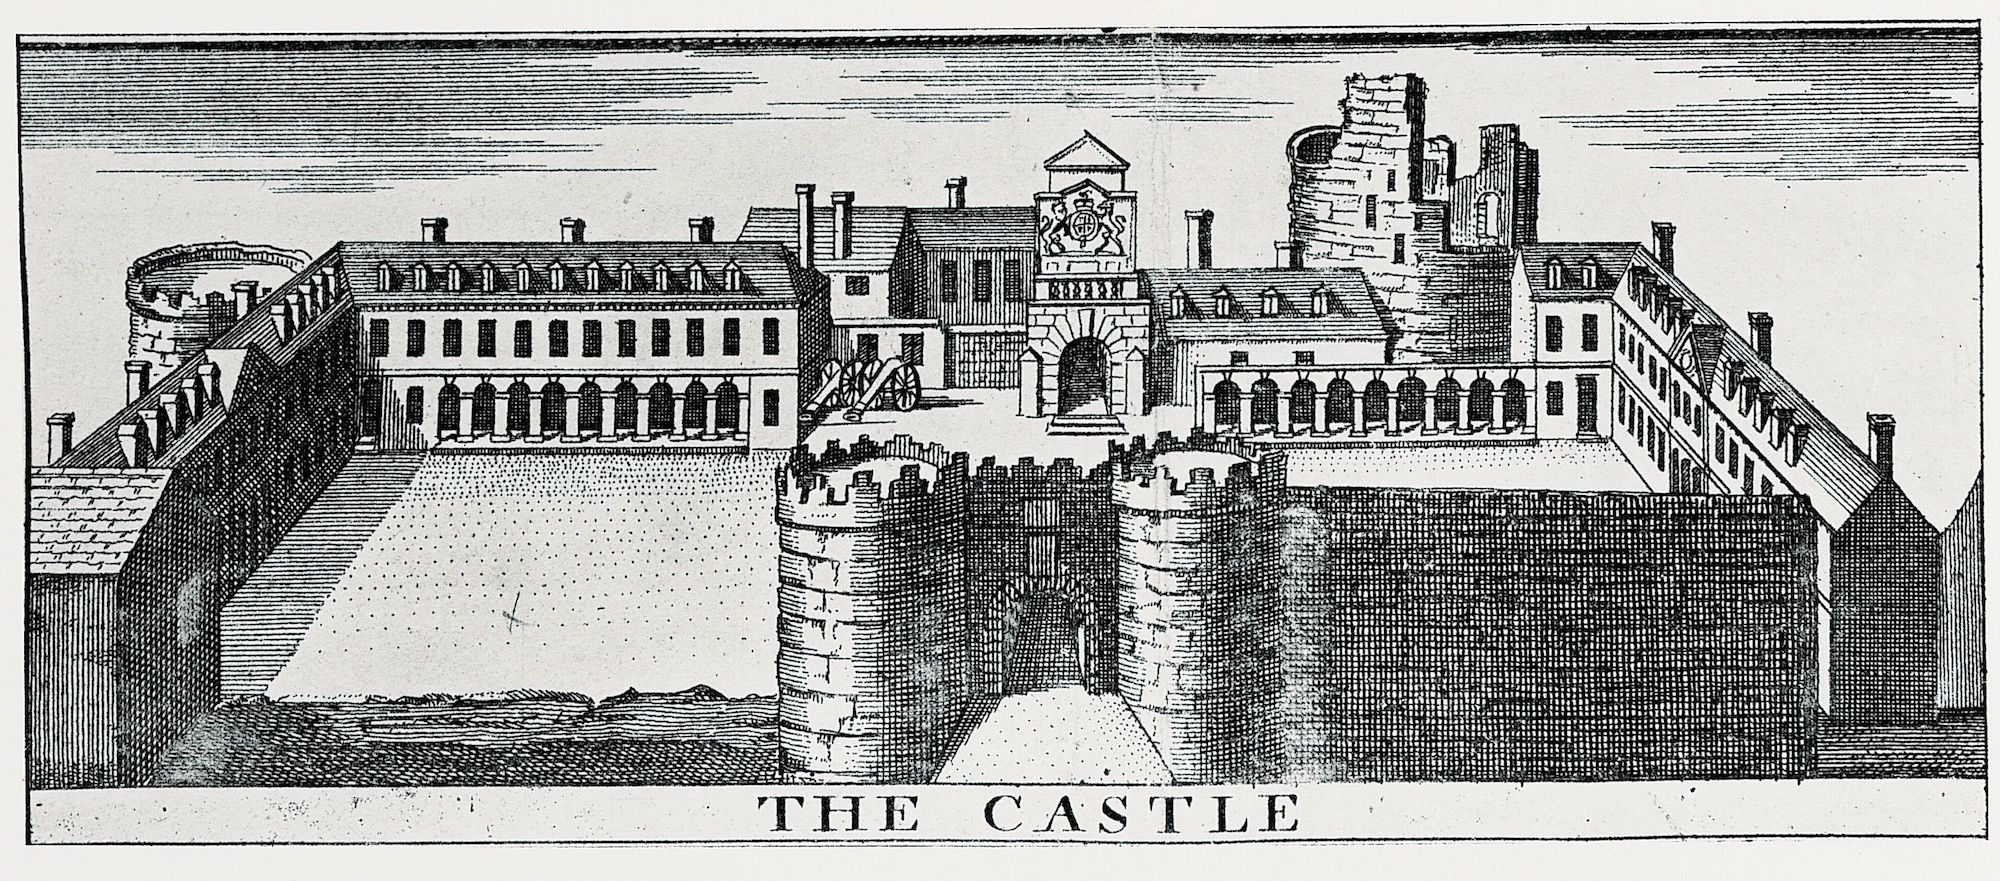 View-of-Dublin-Castle-fom-Charles-Brookings-map-of-Dublin-c.1728